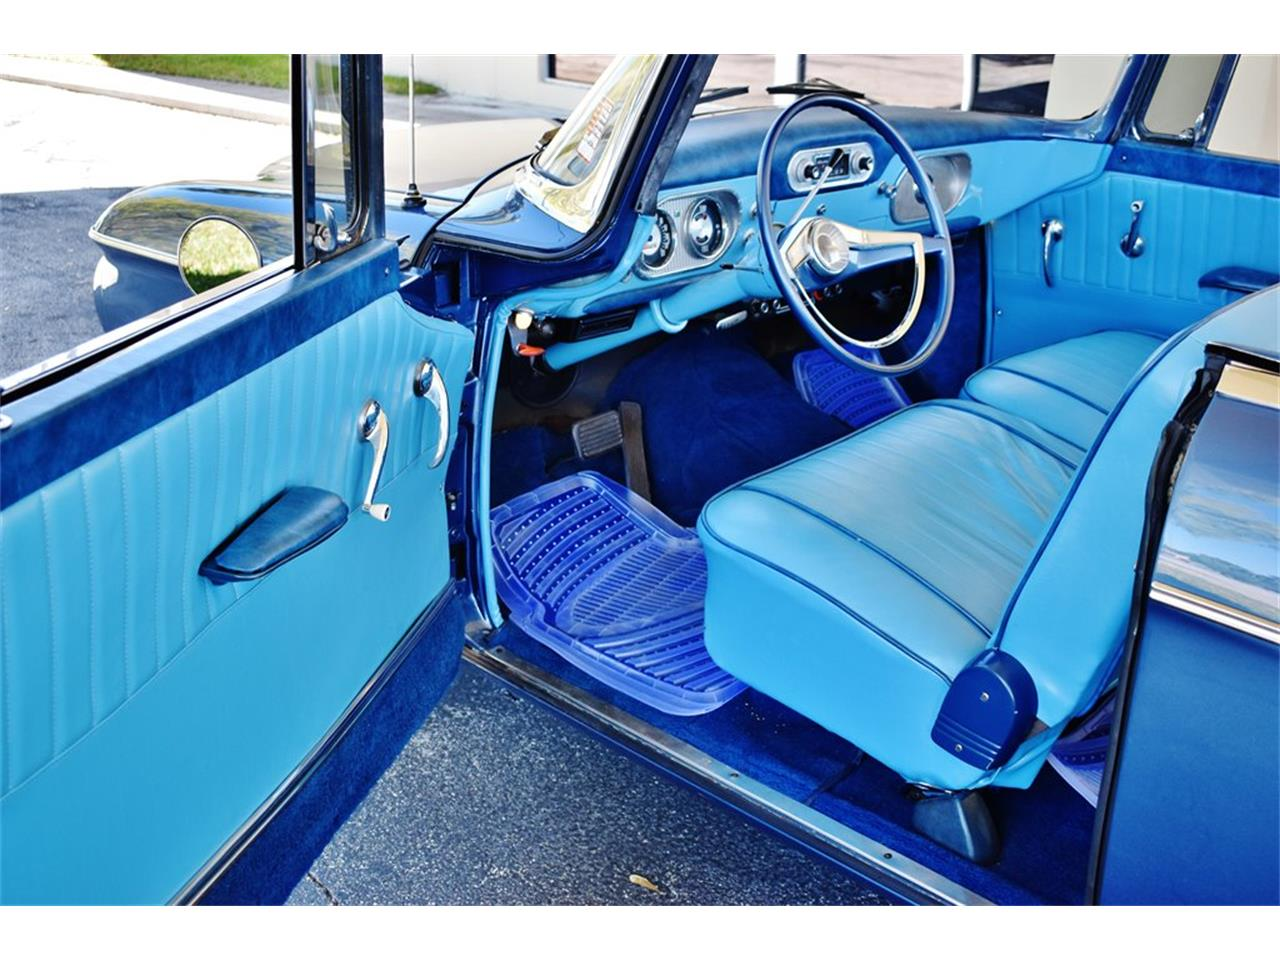 1960 Studebaker Lark for sale in Lakeland, FL – photo 32